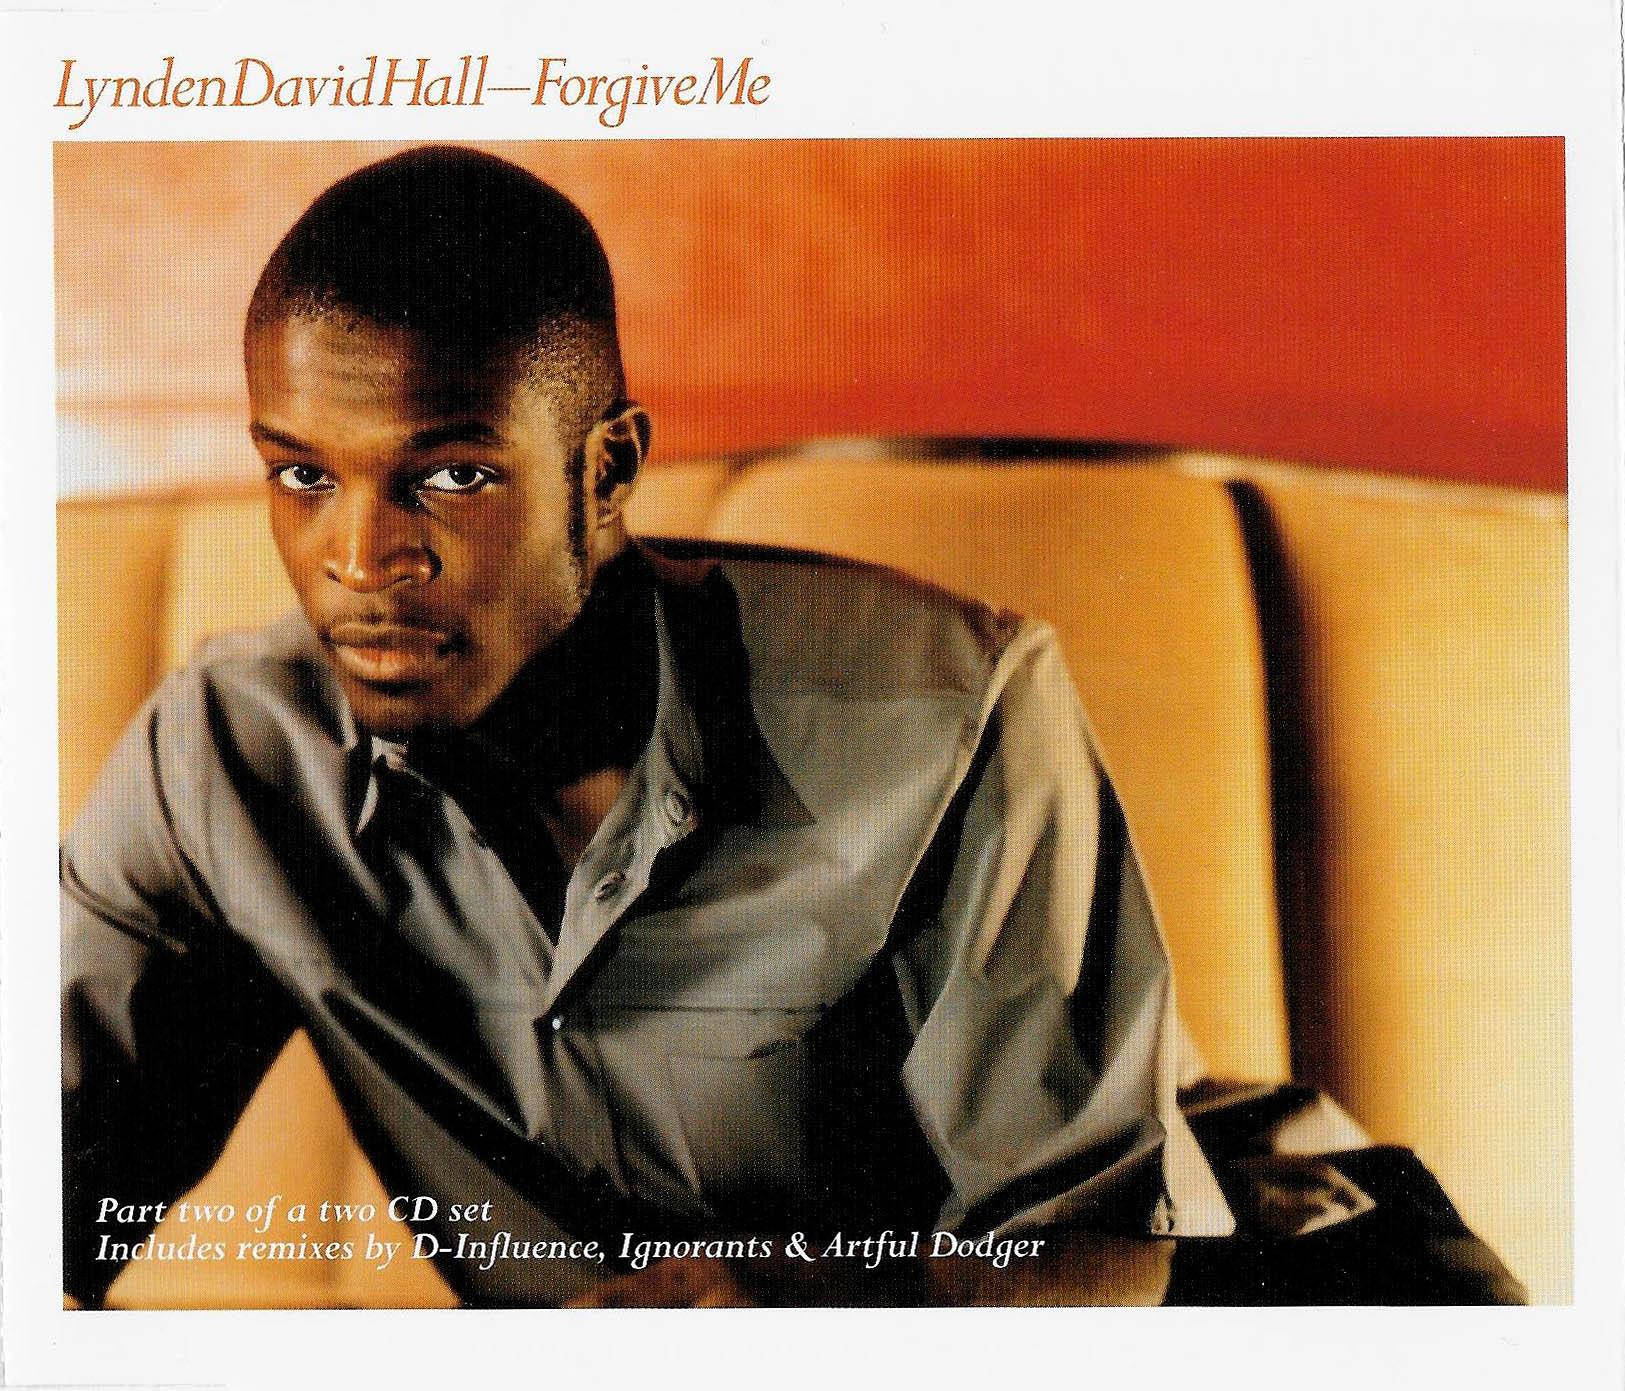 Lynden_David_Hall_Forgive_Me_CD_2_front